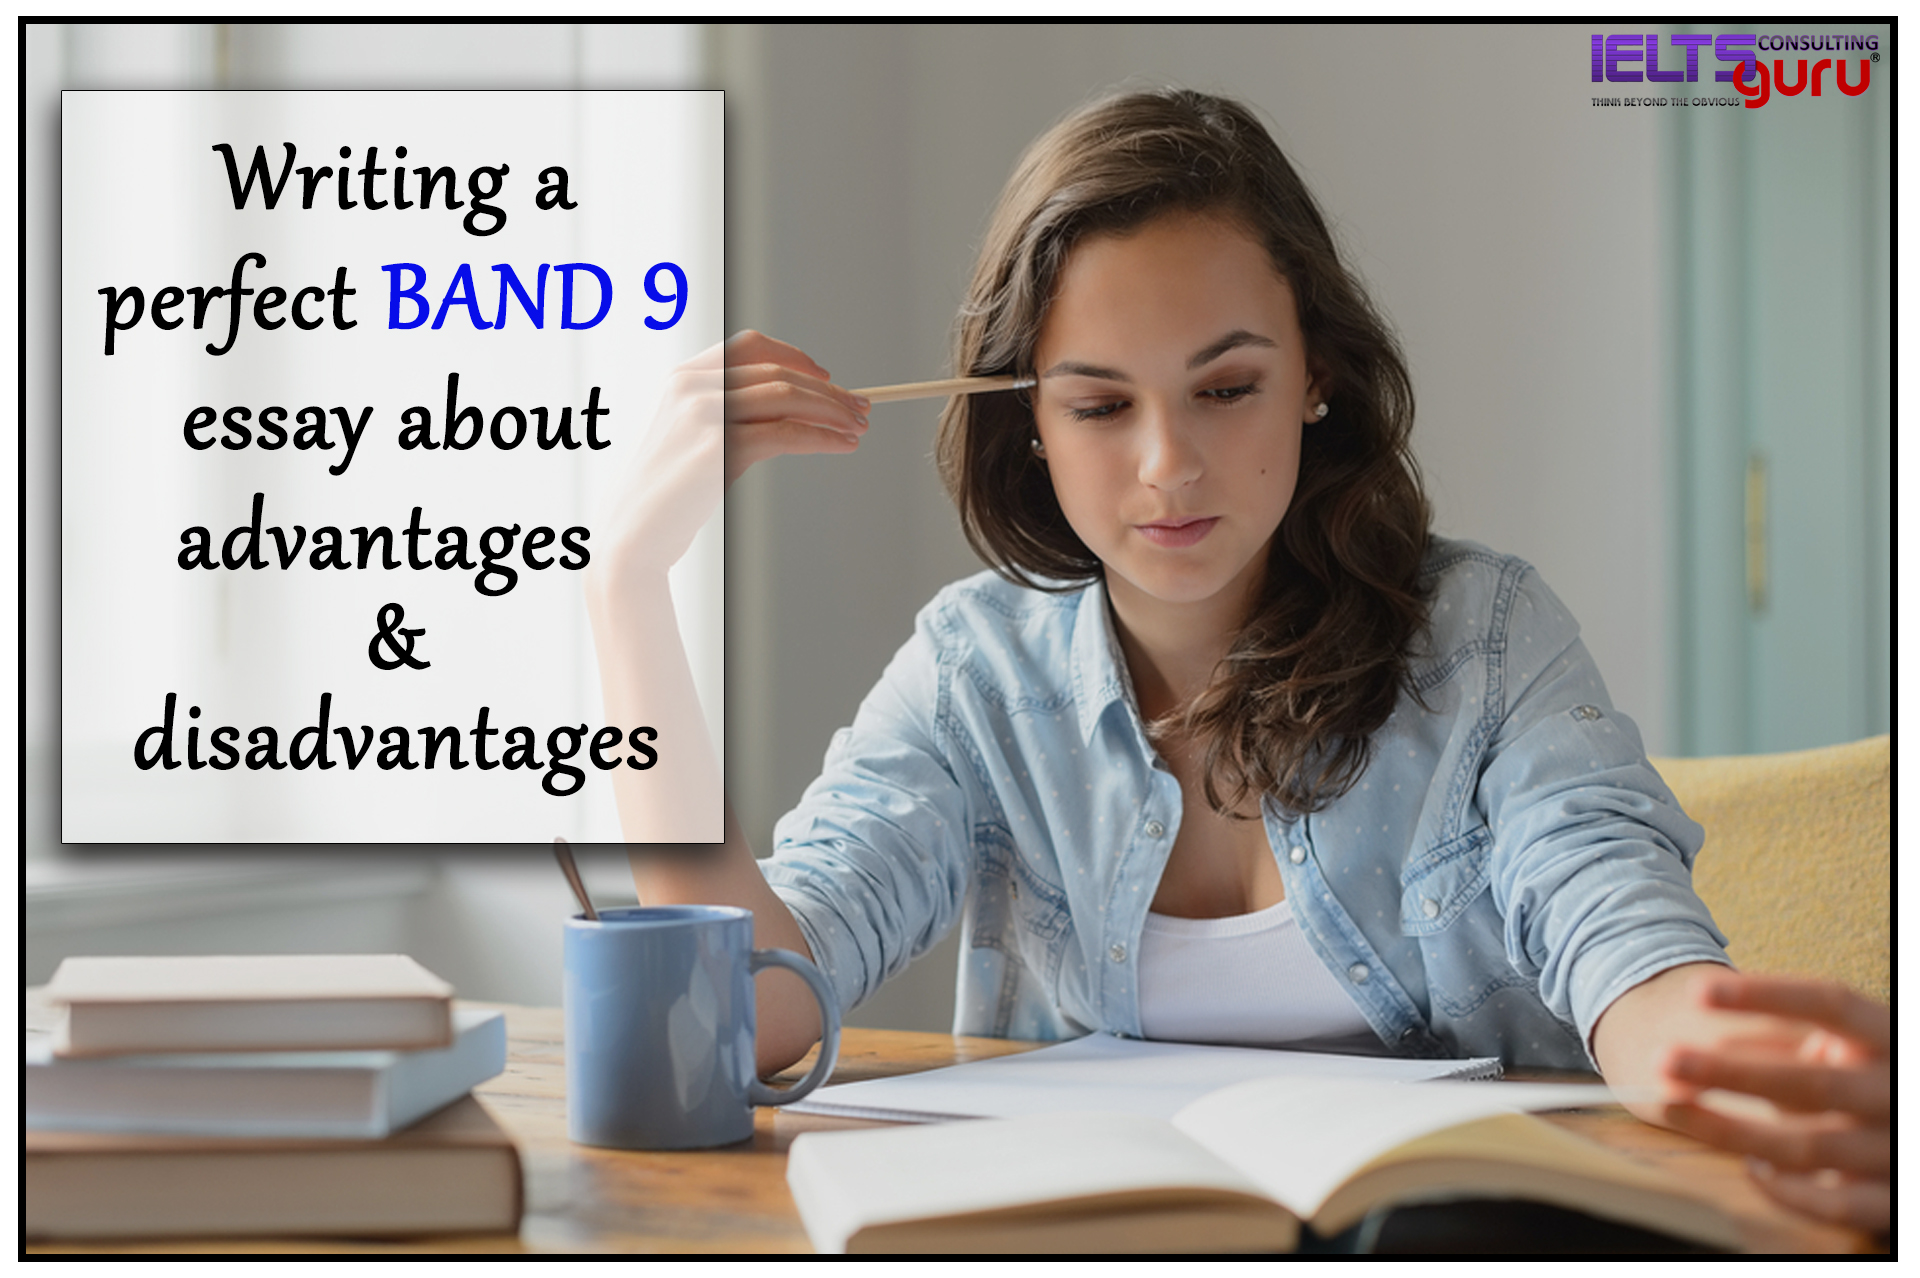 IELTS Advantages and disadvantages essay - IELTSguru